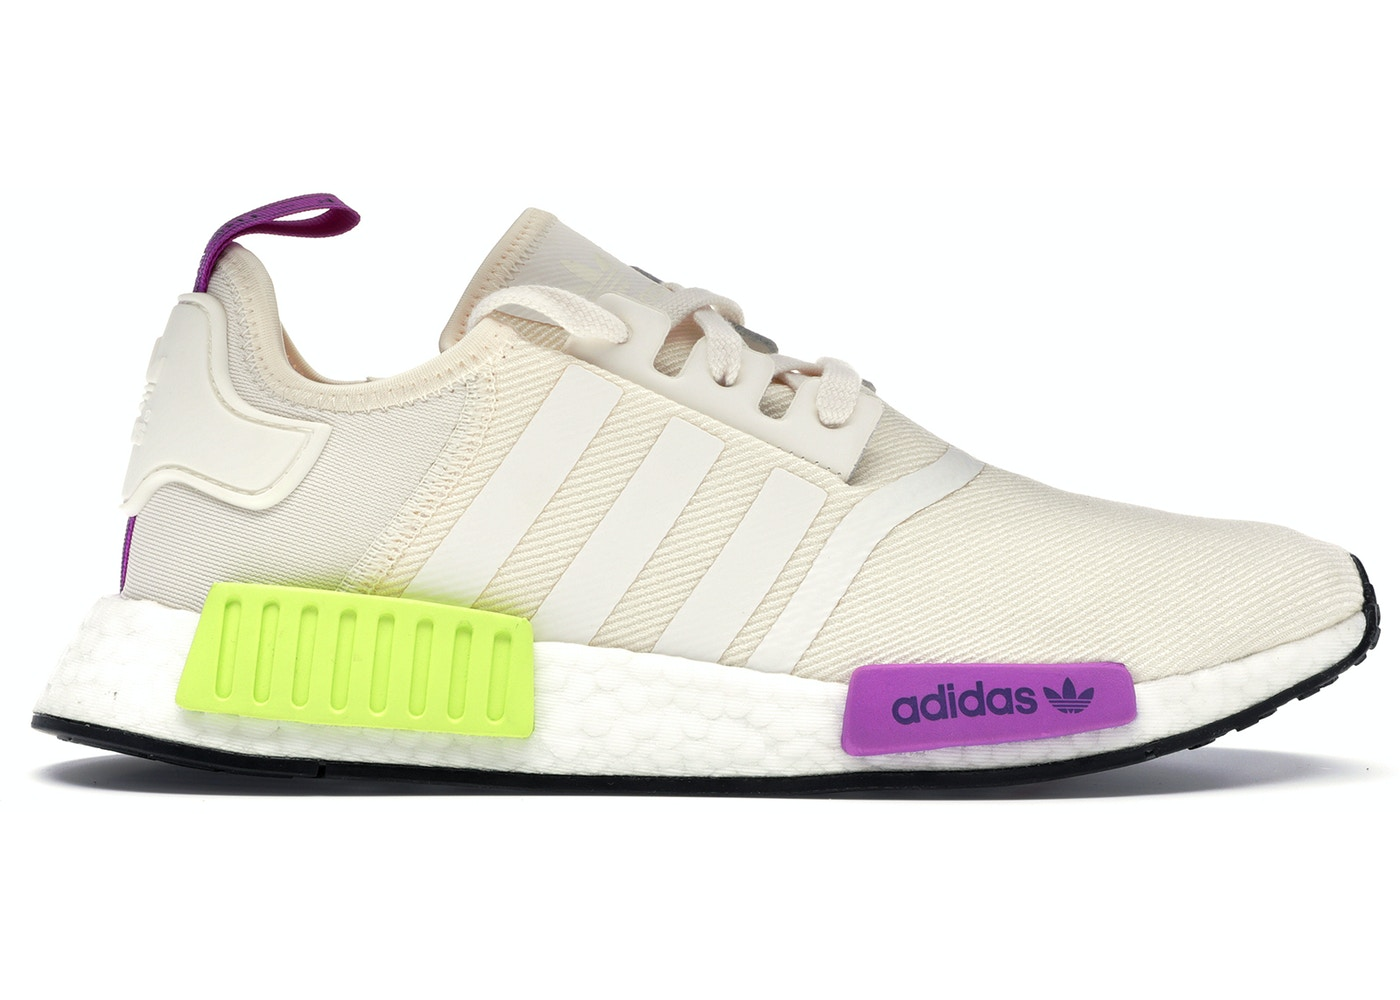 96e1669789a Buy adidas NMD Size 4 Shoes   Deadstock Sneakers